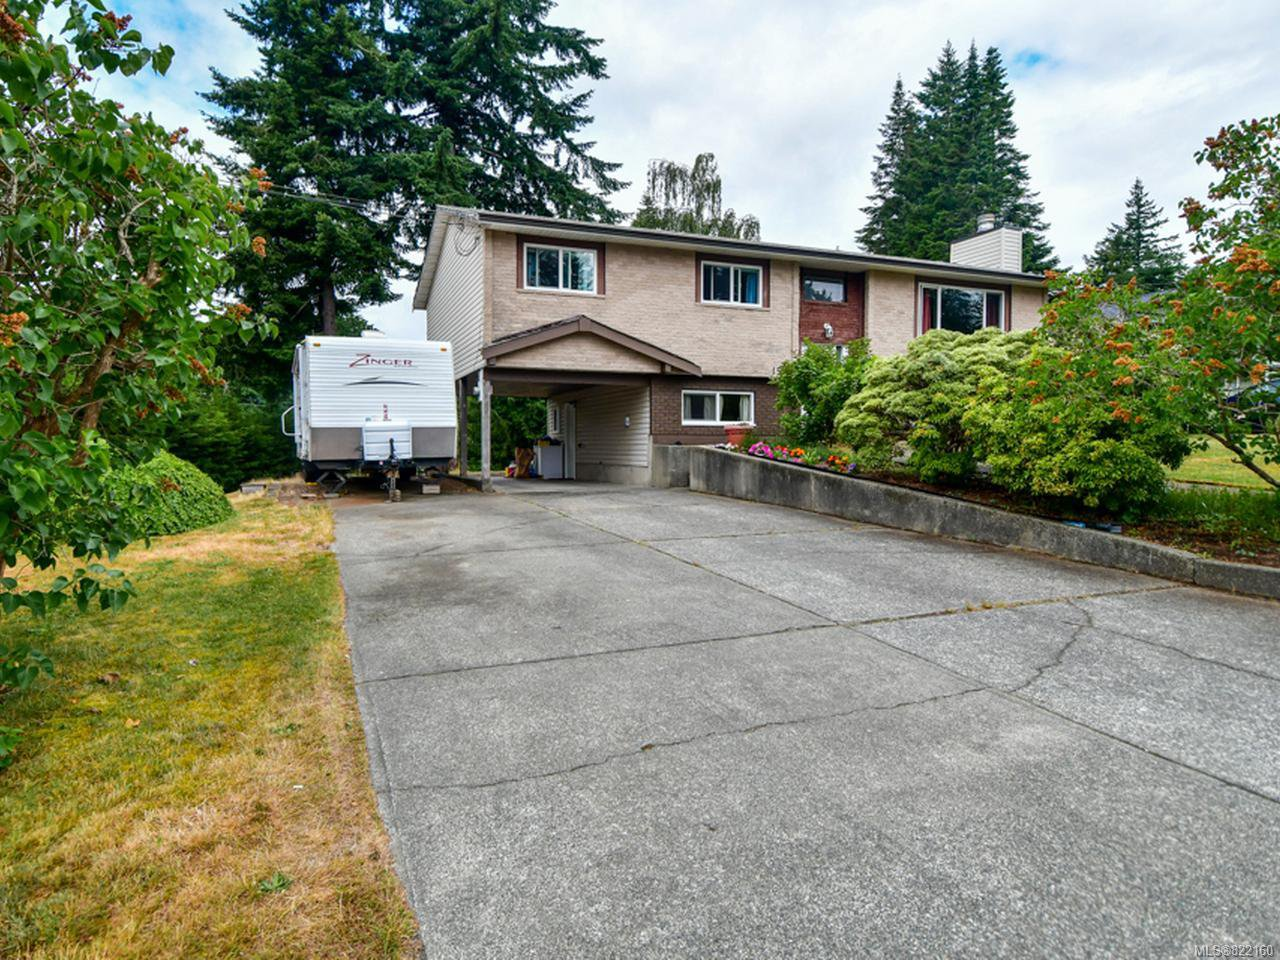 Main Photo: 1510 LEED ROAD in CAMPBELL RIVER: CR Willow Point House for sale (Campbell River)  : MLS®# 822160